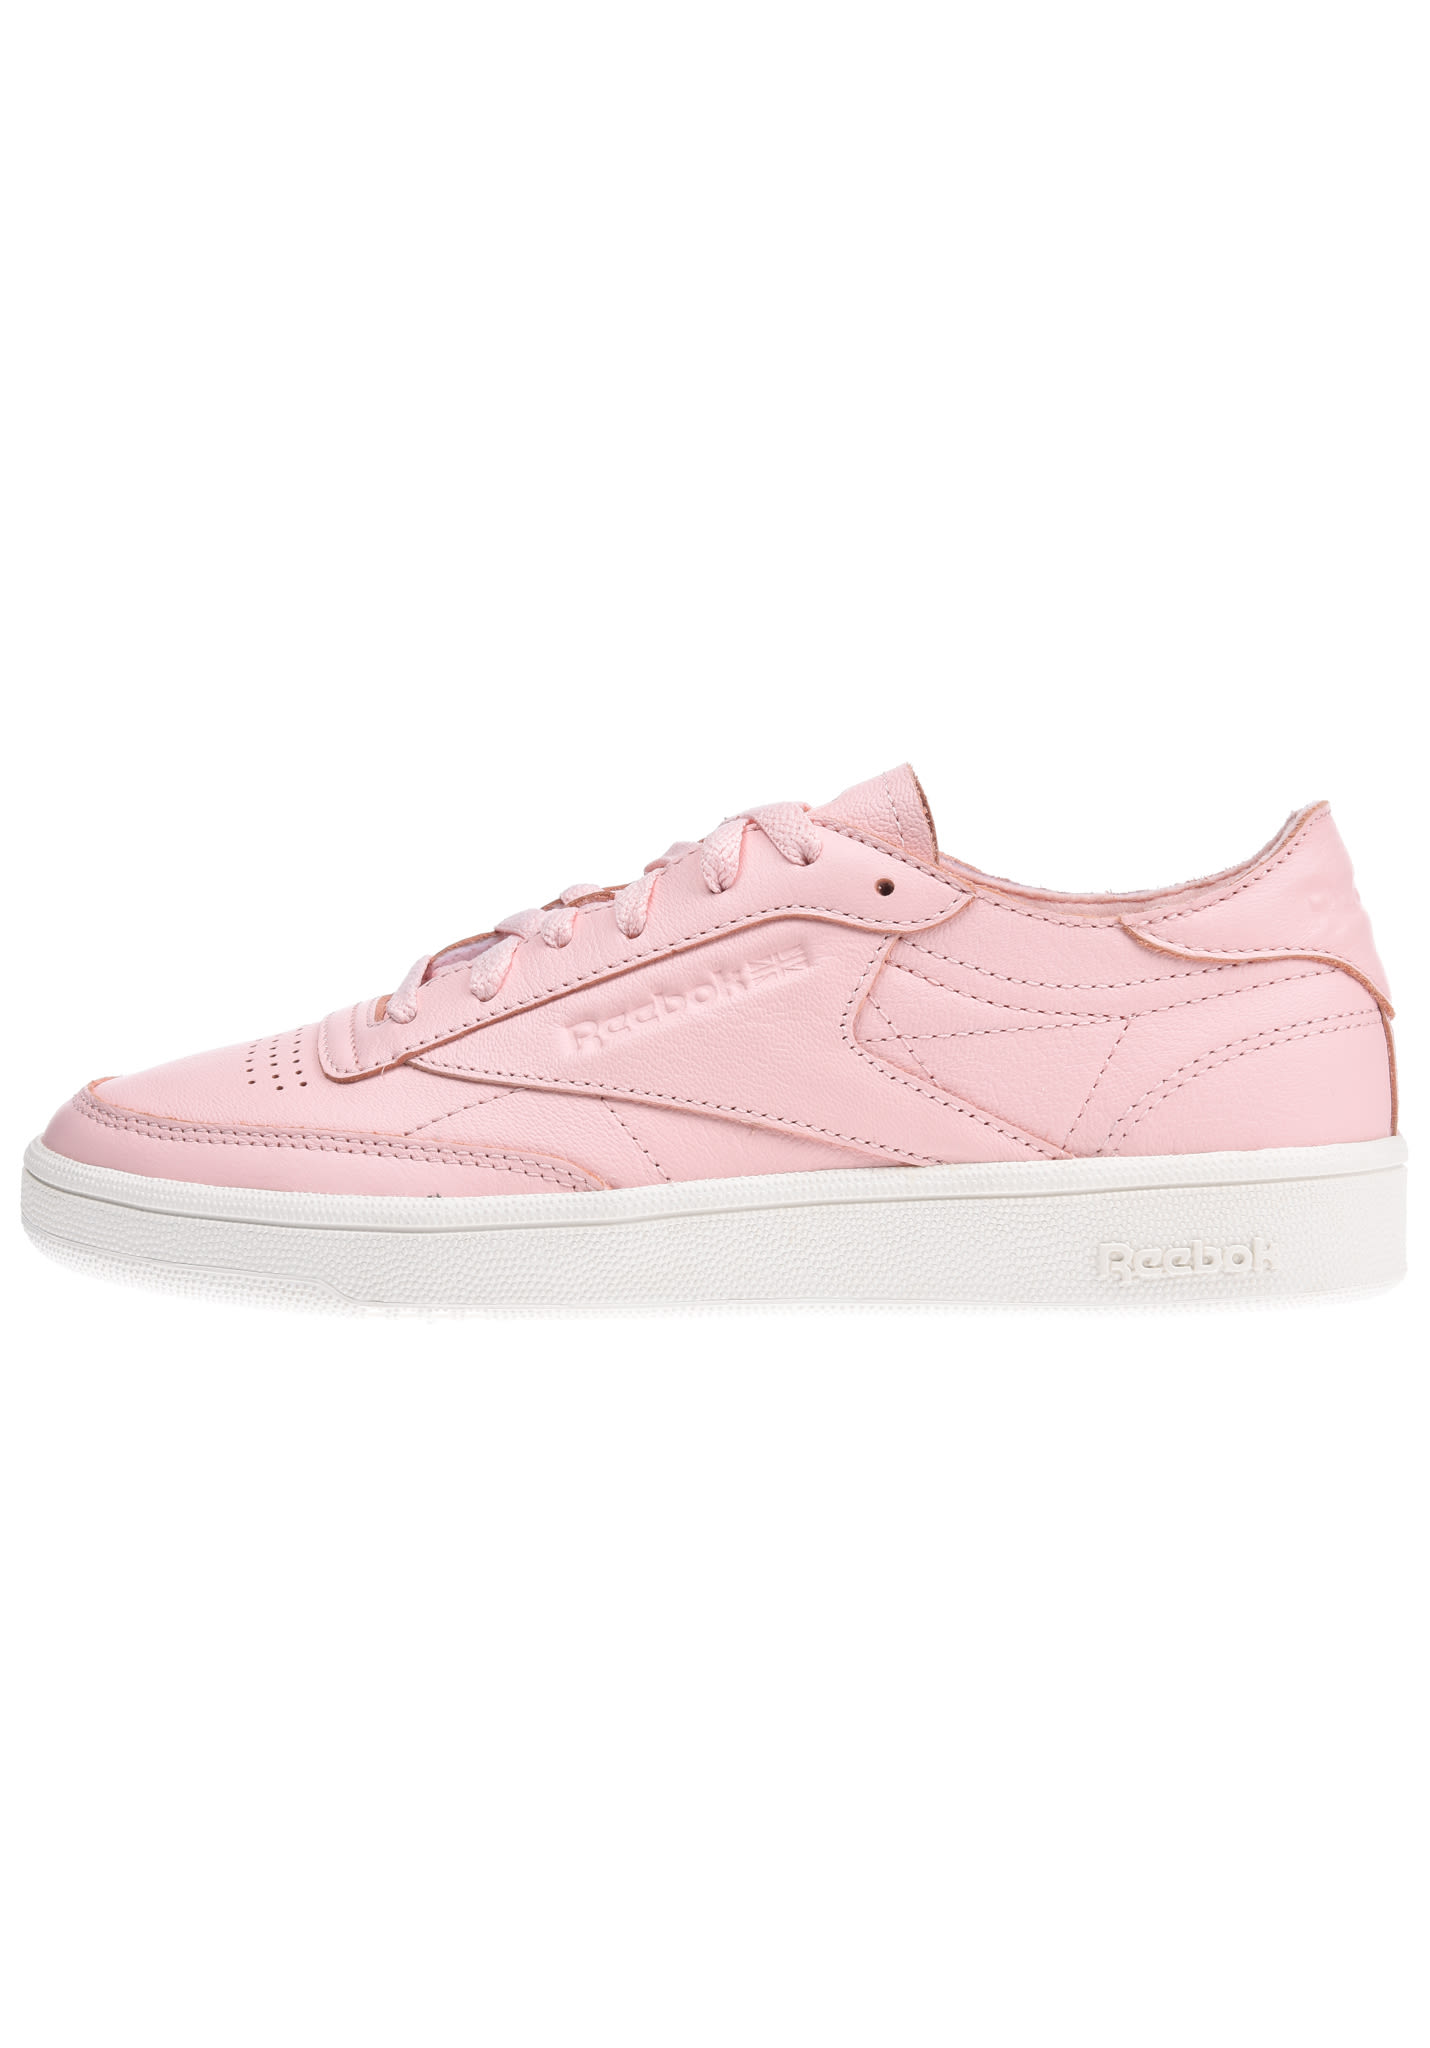 33f0363665b1d3 Reebok Club C 85 Dcn - Sneakers for Women - Pink - Planet Sports